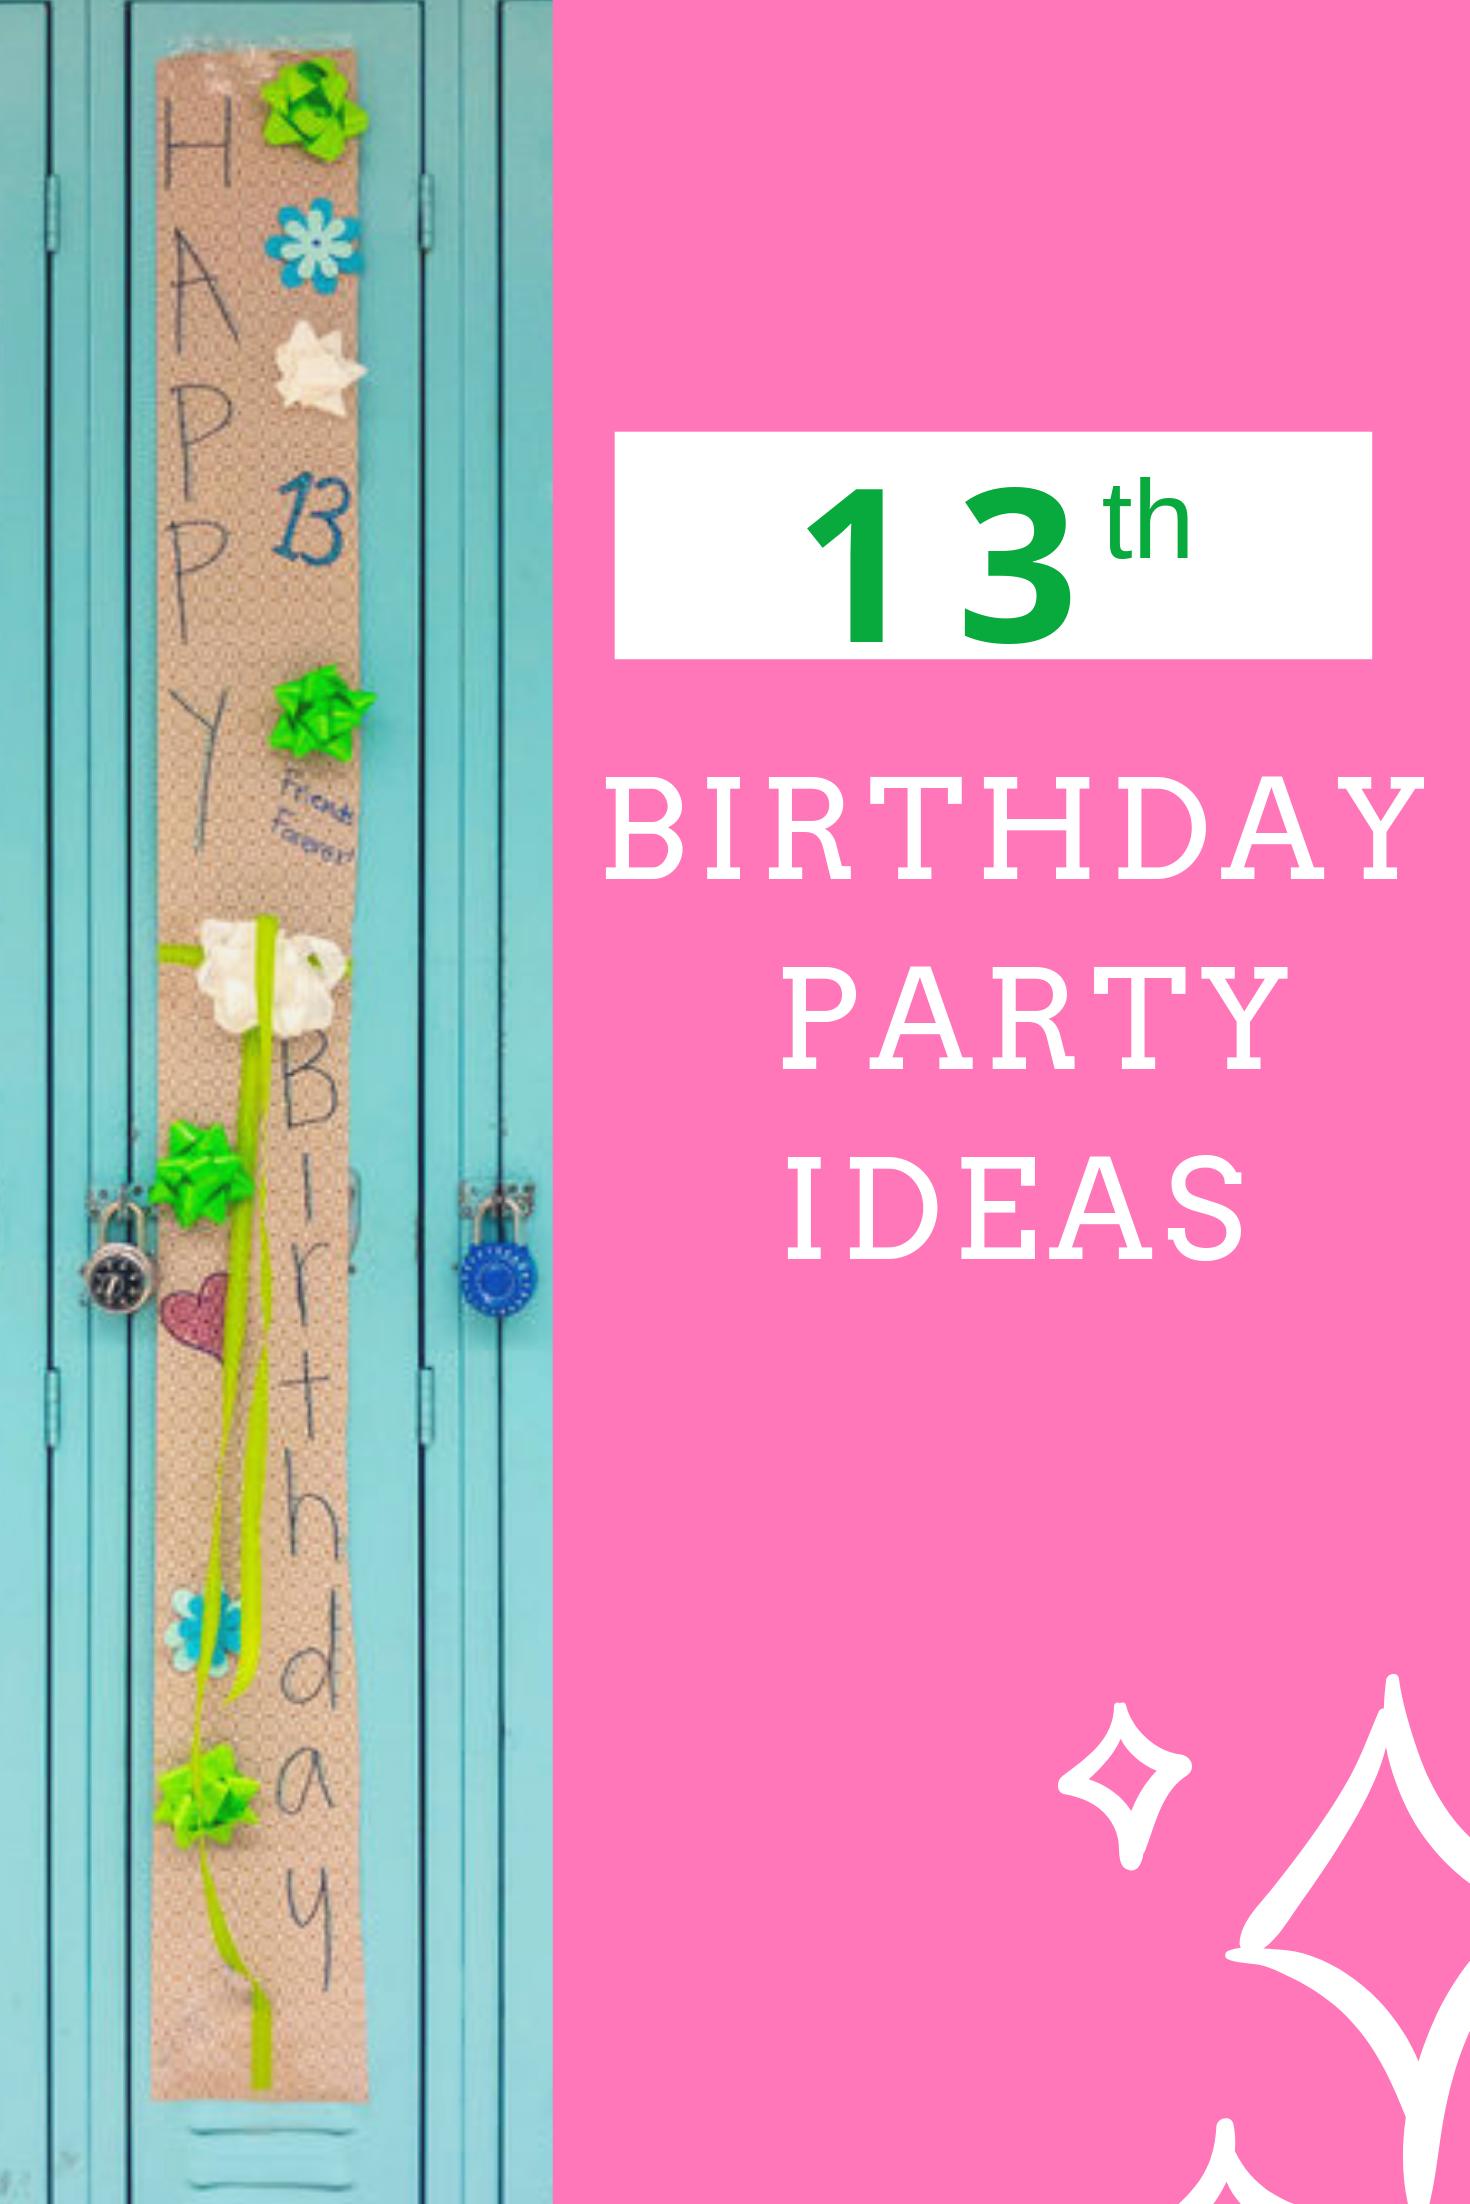 13th Birthday Party Ideas